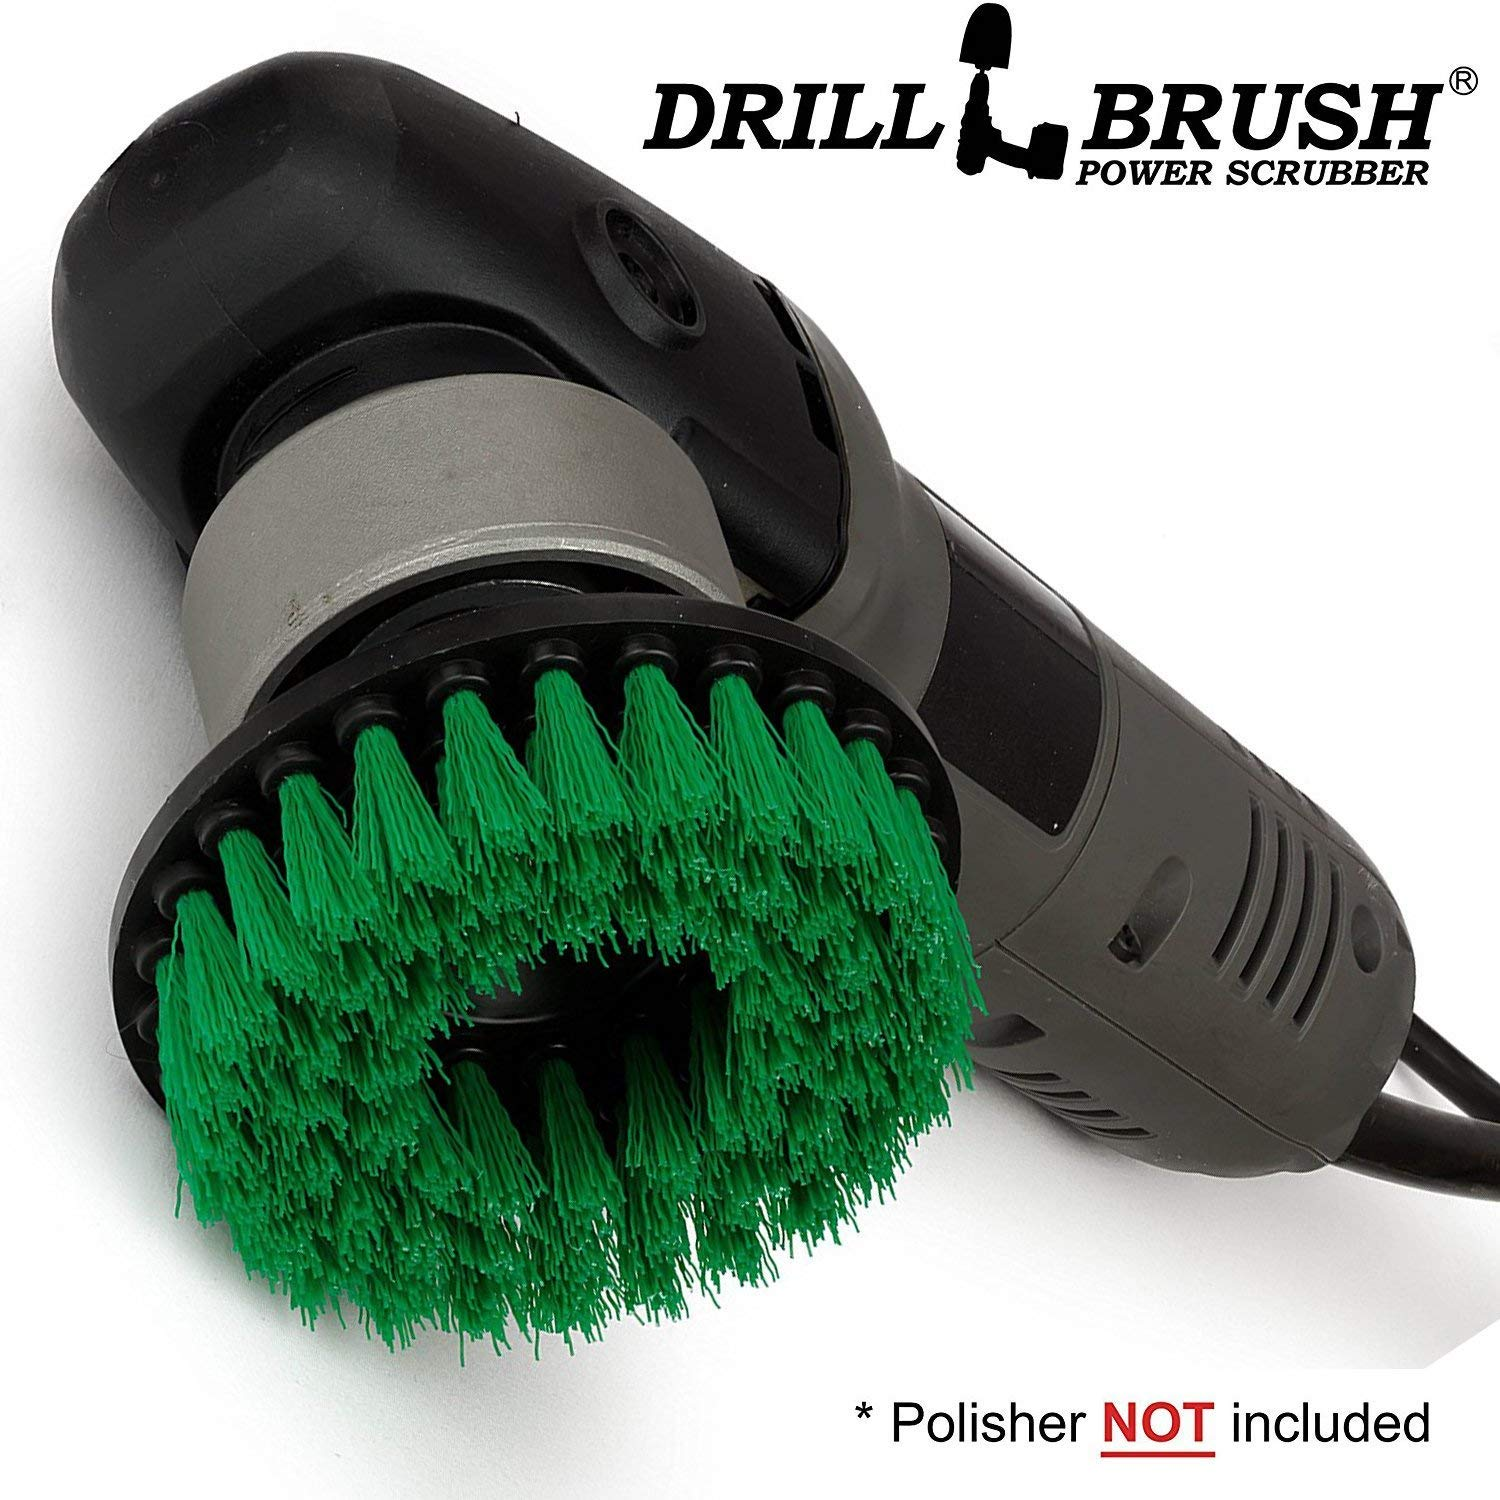 Drillbrush Construction Tools - Medium Scrub Brush - Threaded - 5/16 x 24 - fits Electric - Cordless - Air Pneumatic - Variable Speed - Dual Action - Orbital - Rotary - Buffer - Polisher – Machine VTU-DAG